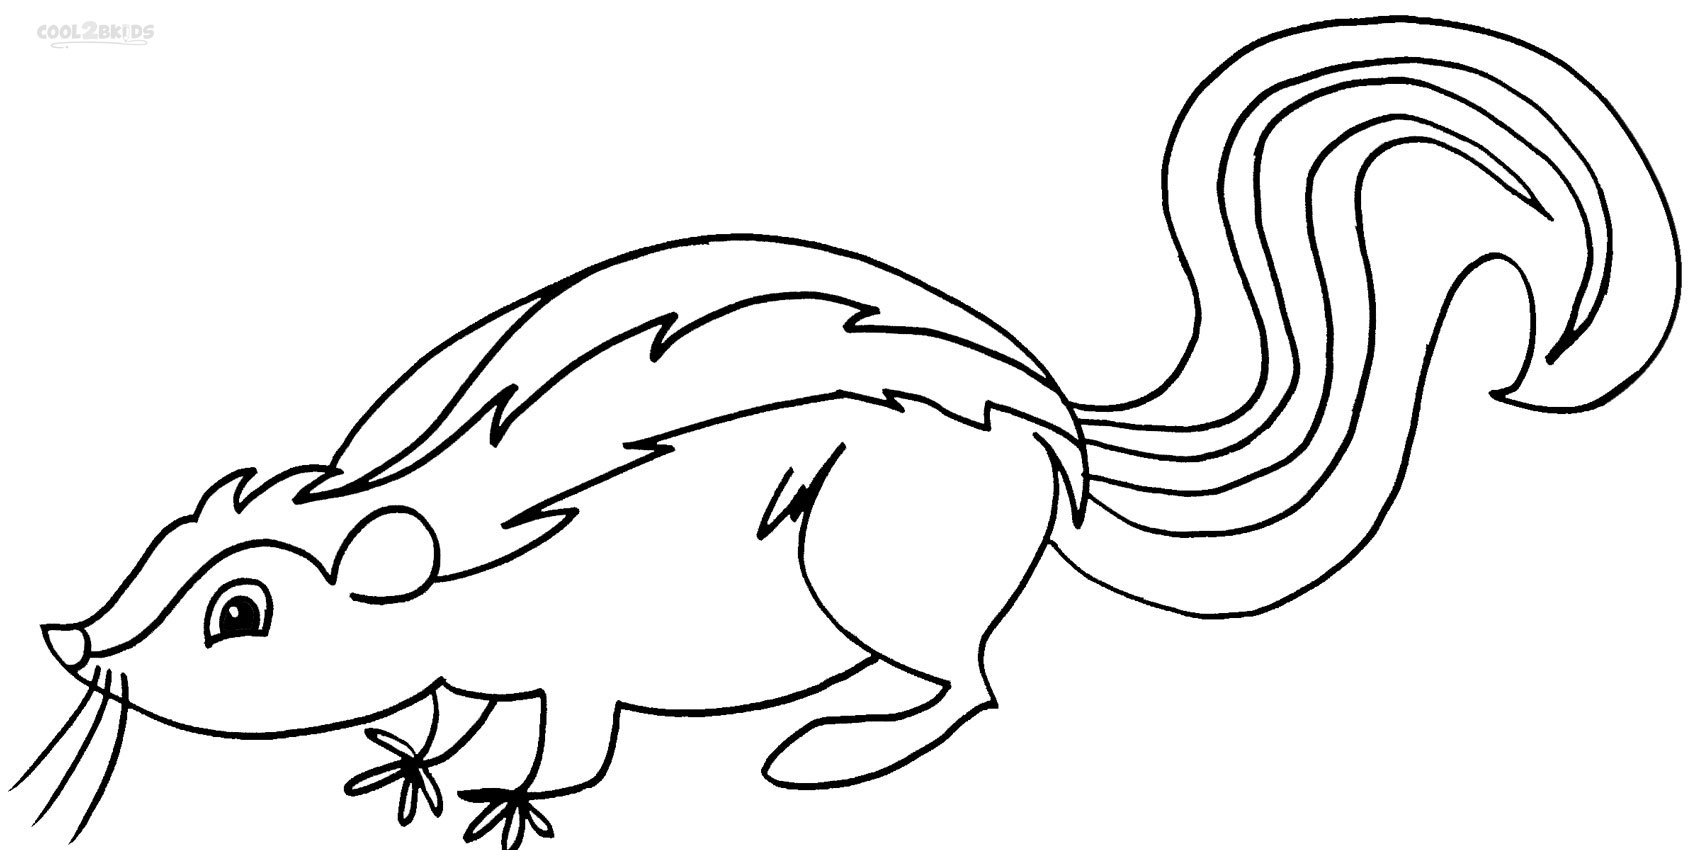 skunk coloring pages print - Colouring Pages Print